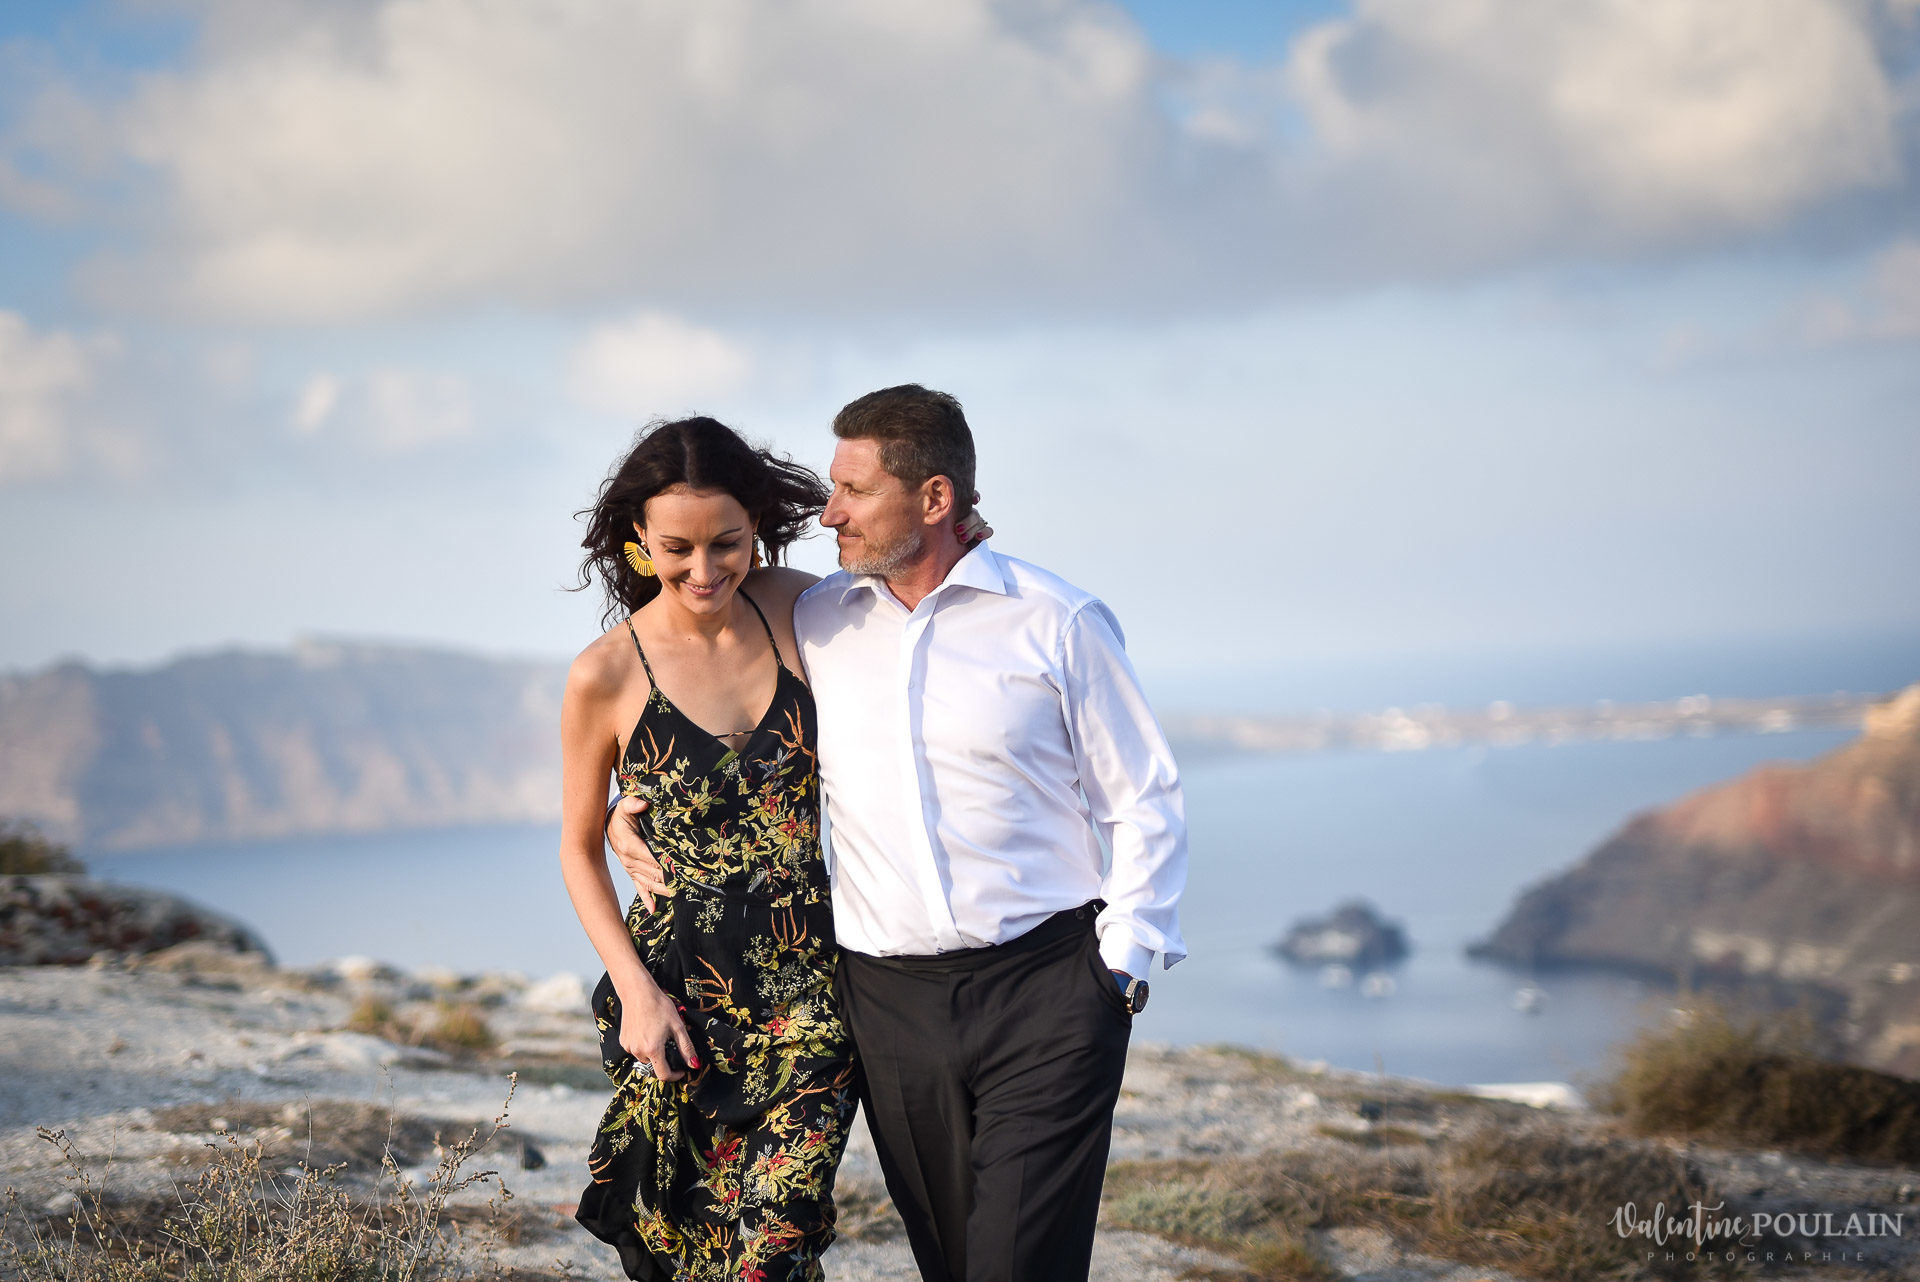 Shooting photo day after Santorin - Valentine Poulain marchent